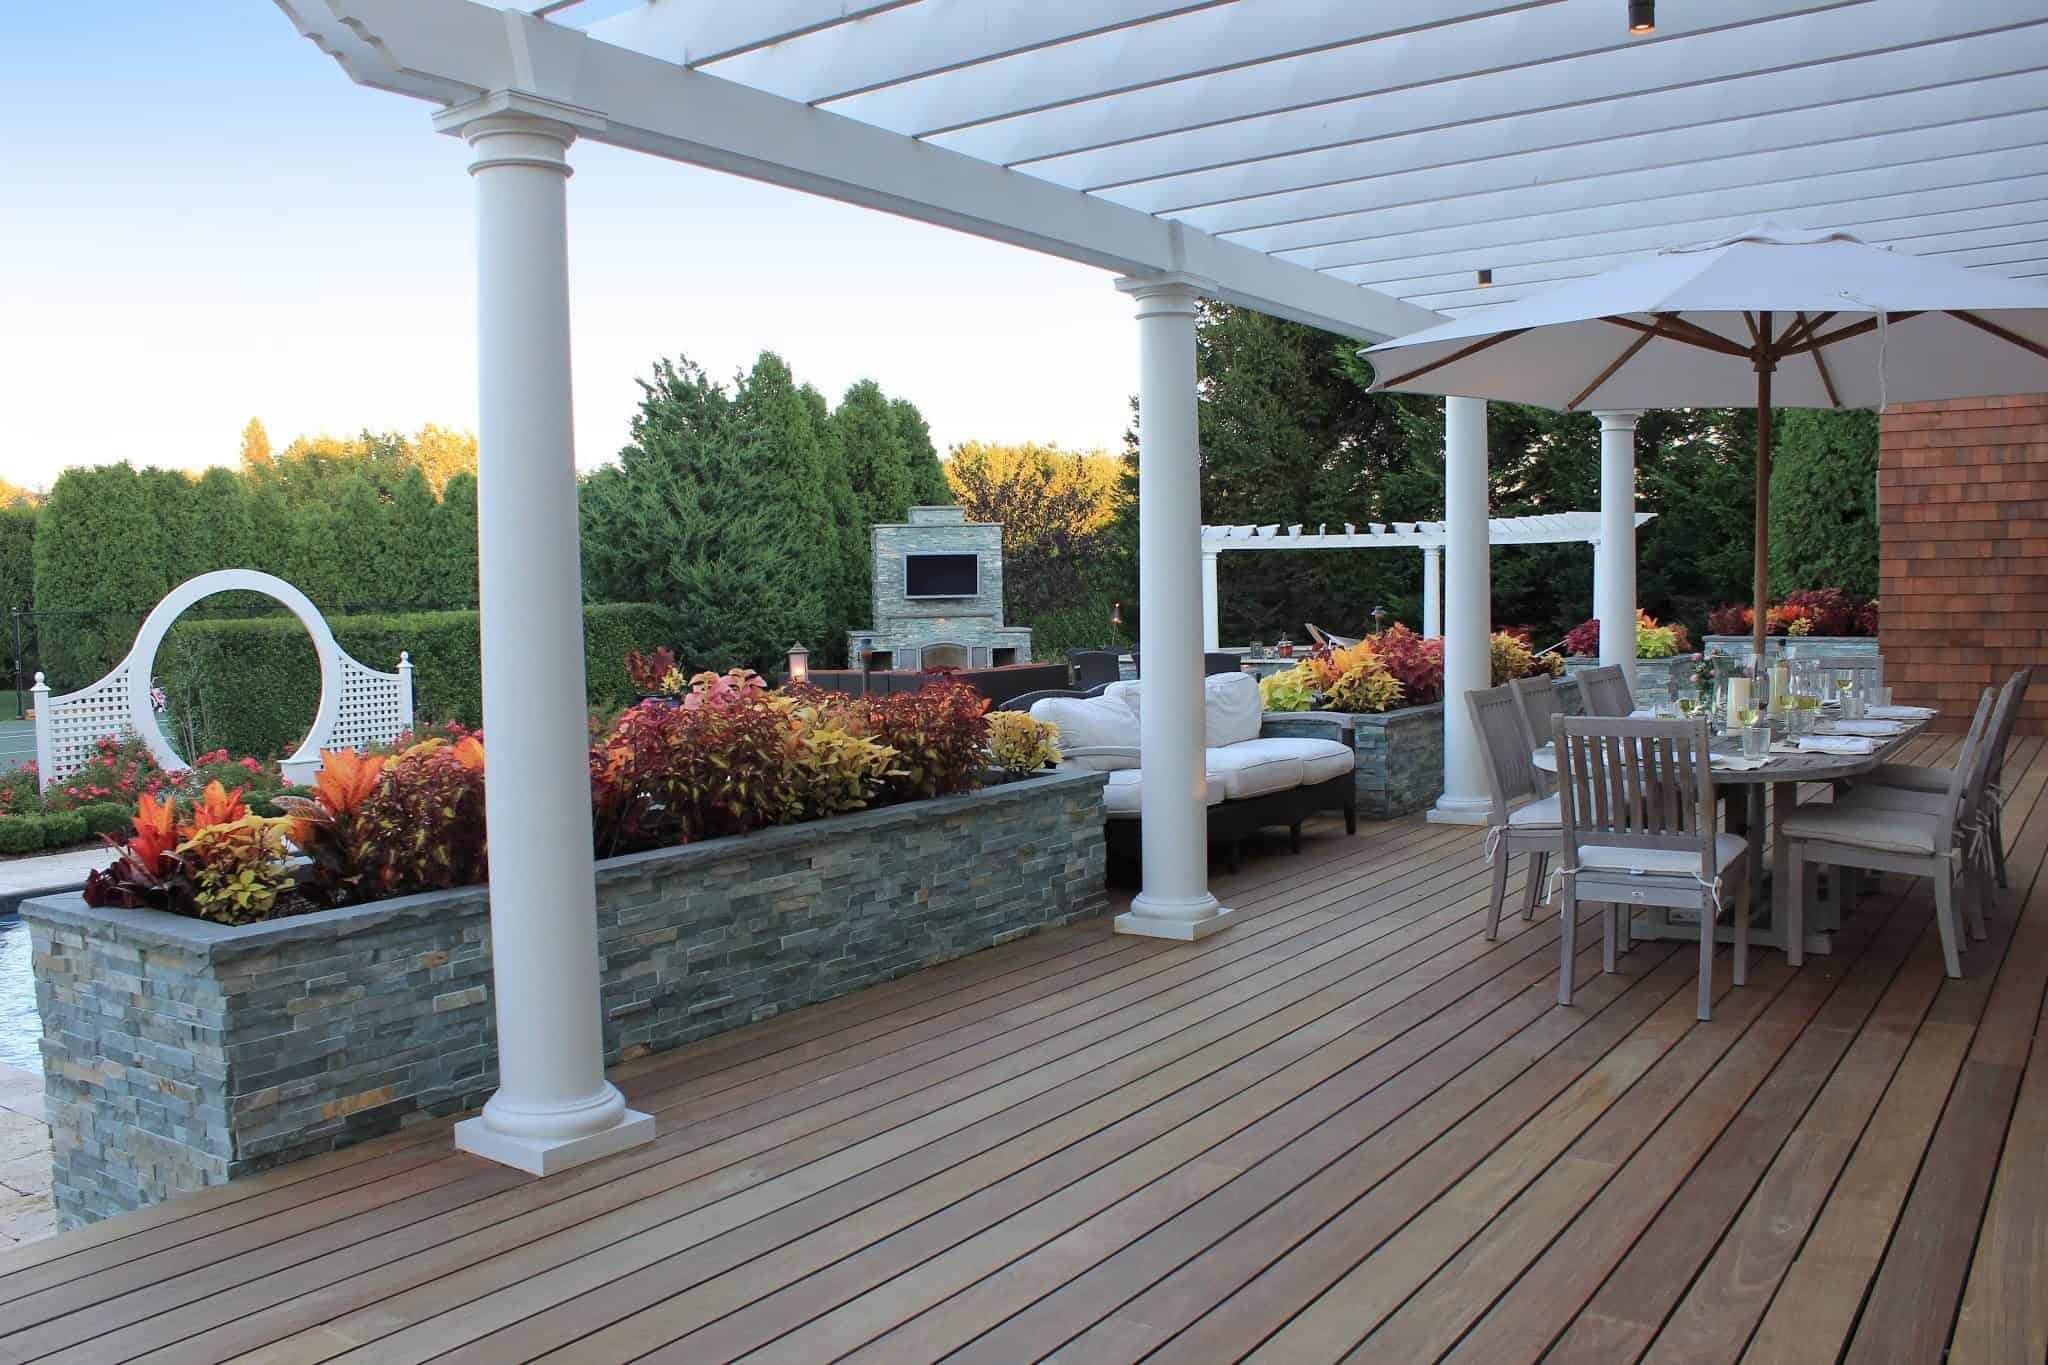 14' x 50' IPE deck with Trex risers - Southampton, Long Island NY